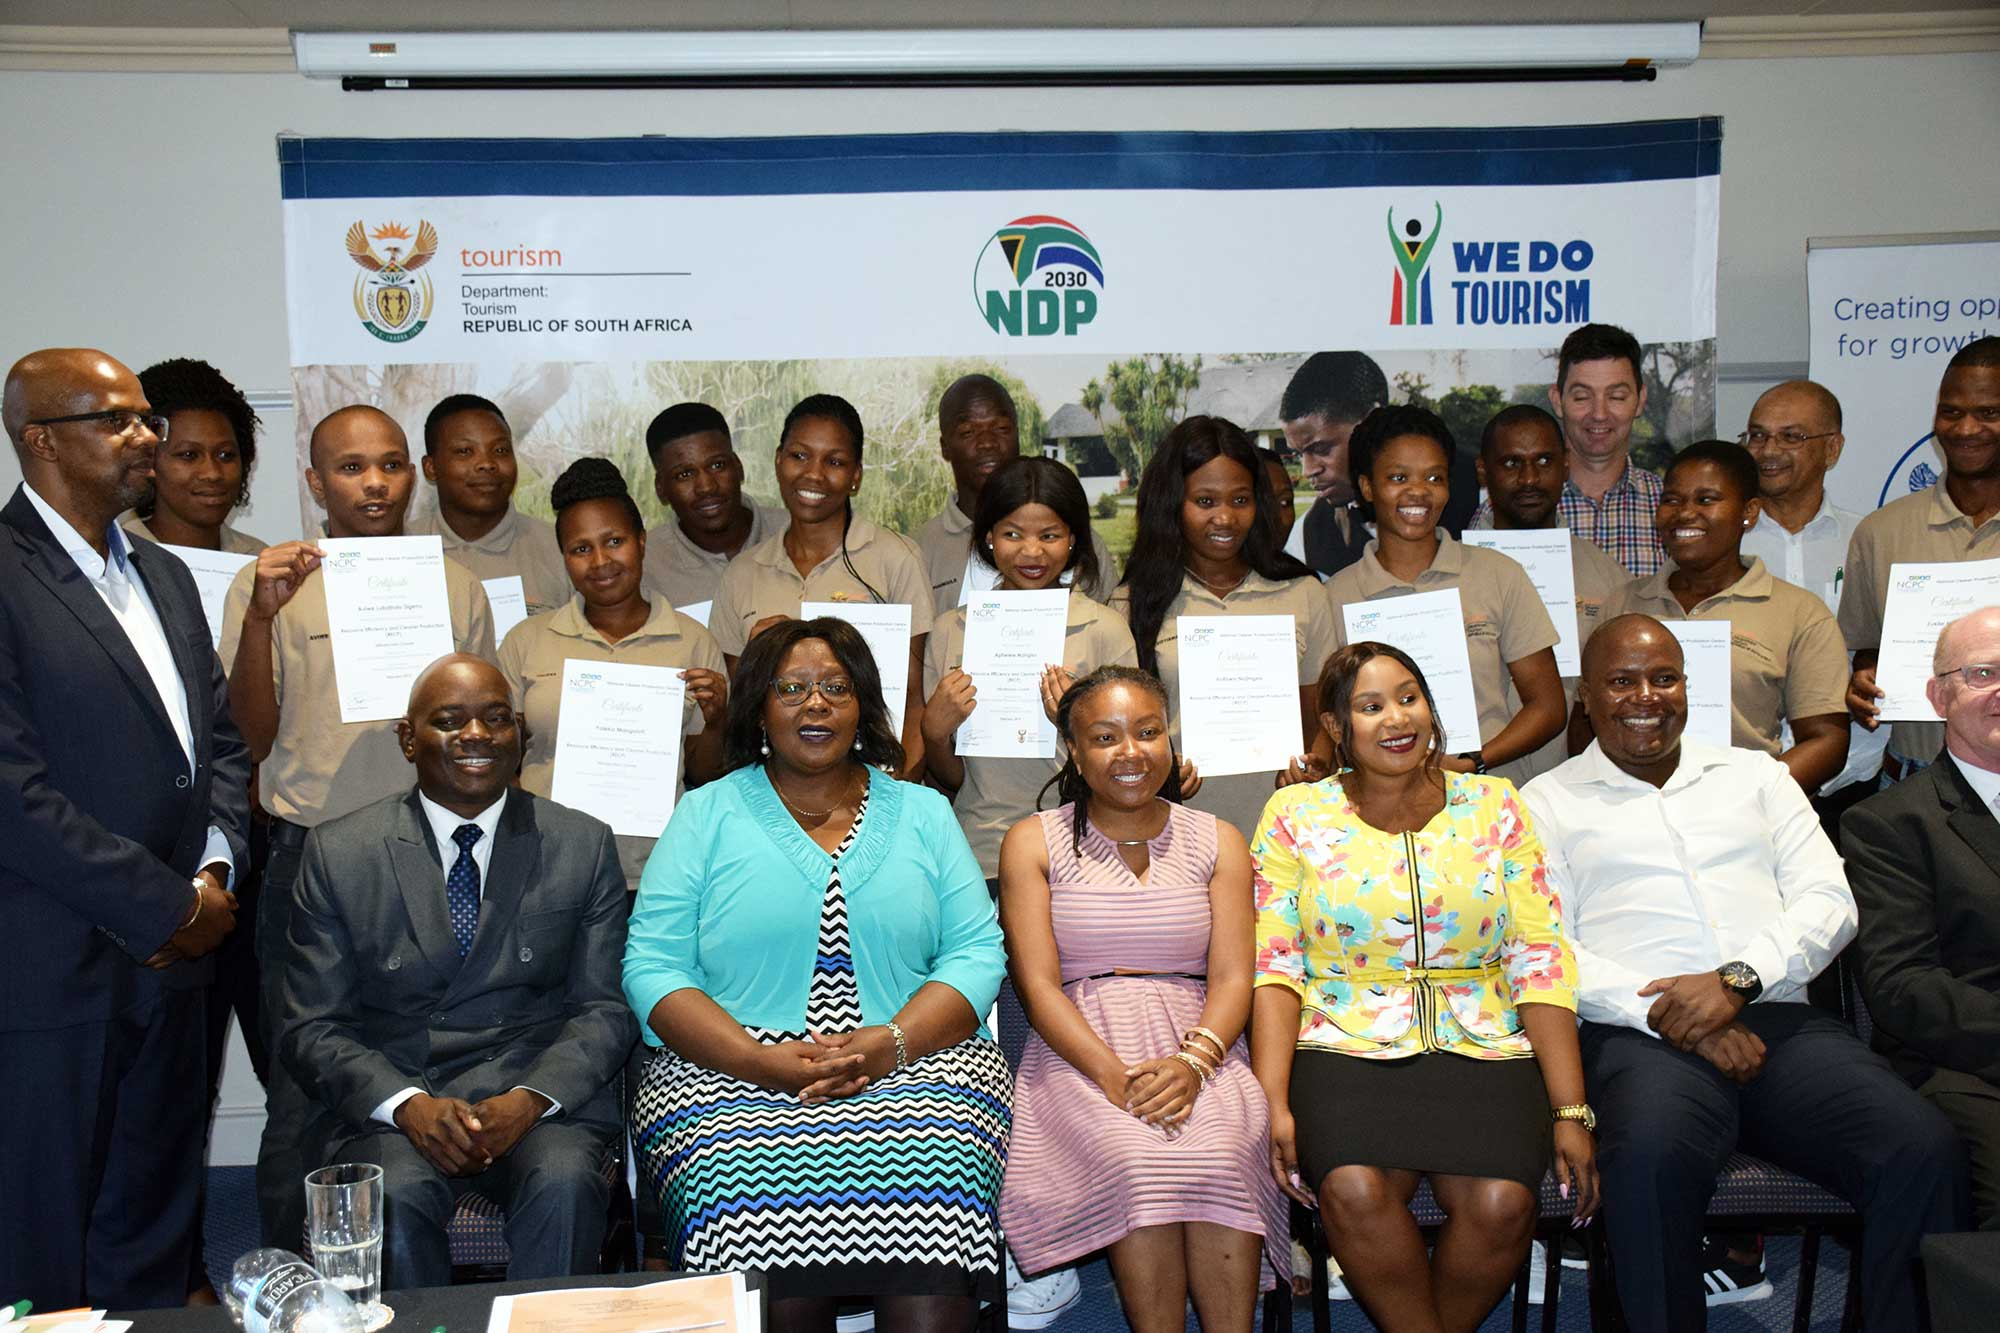 Learners received credentials in the field of responsible tourism practices